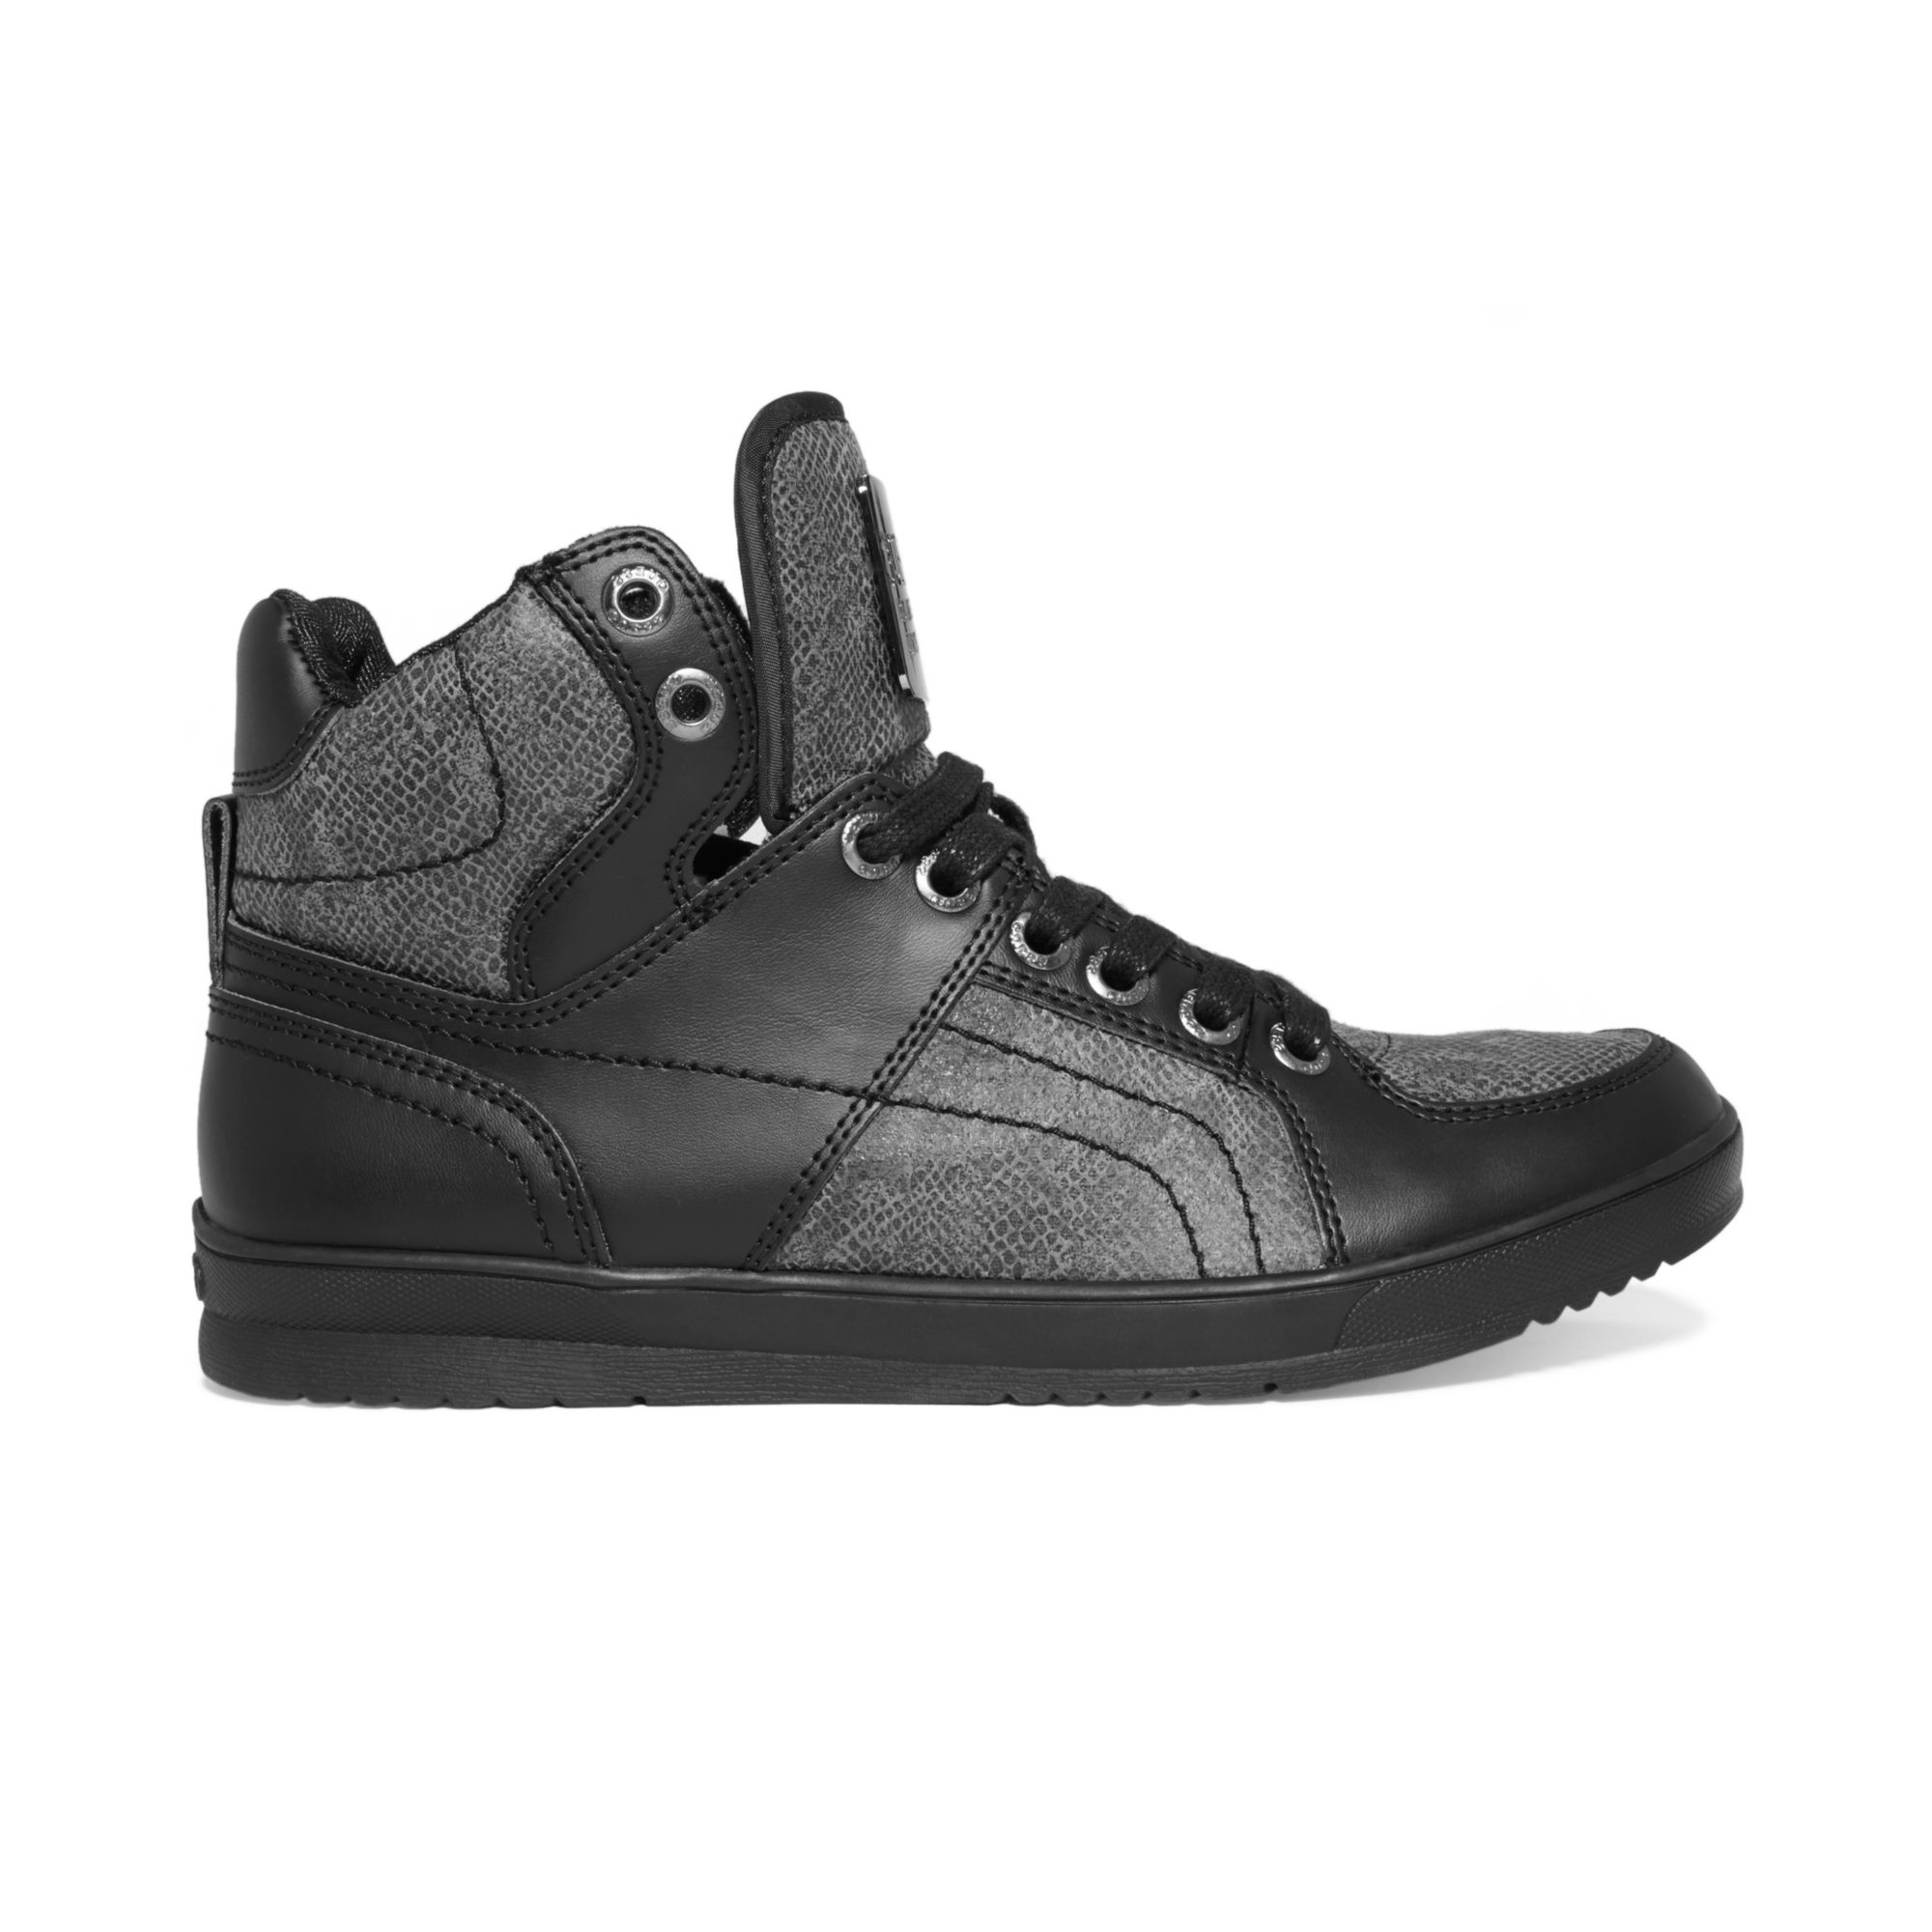 Guess Shoes For Men High Top